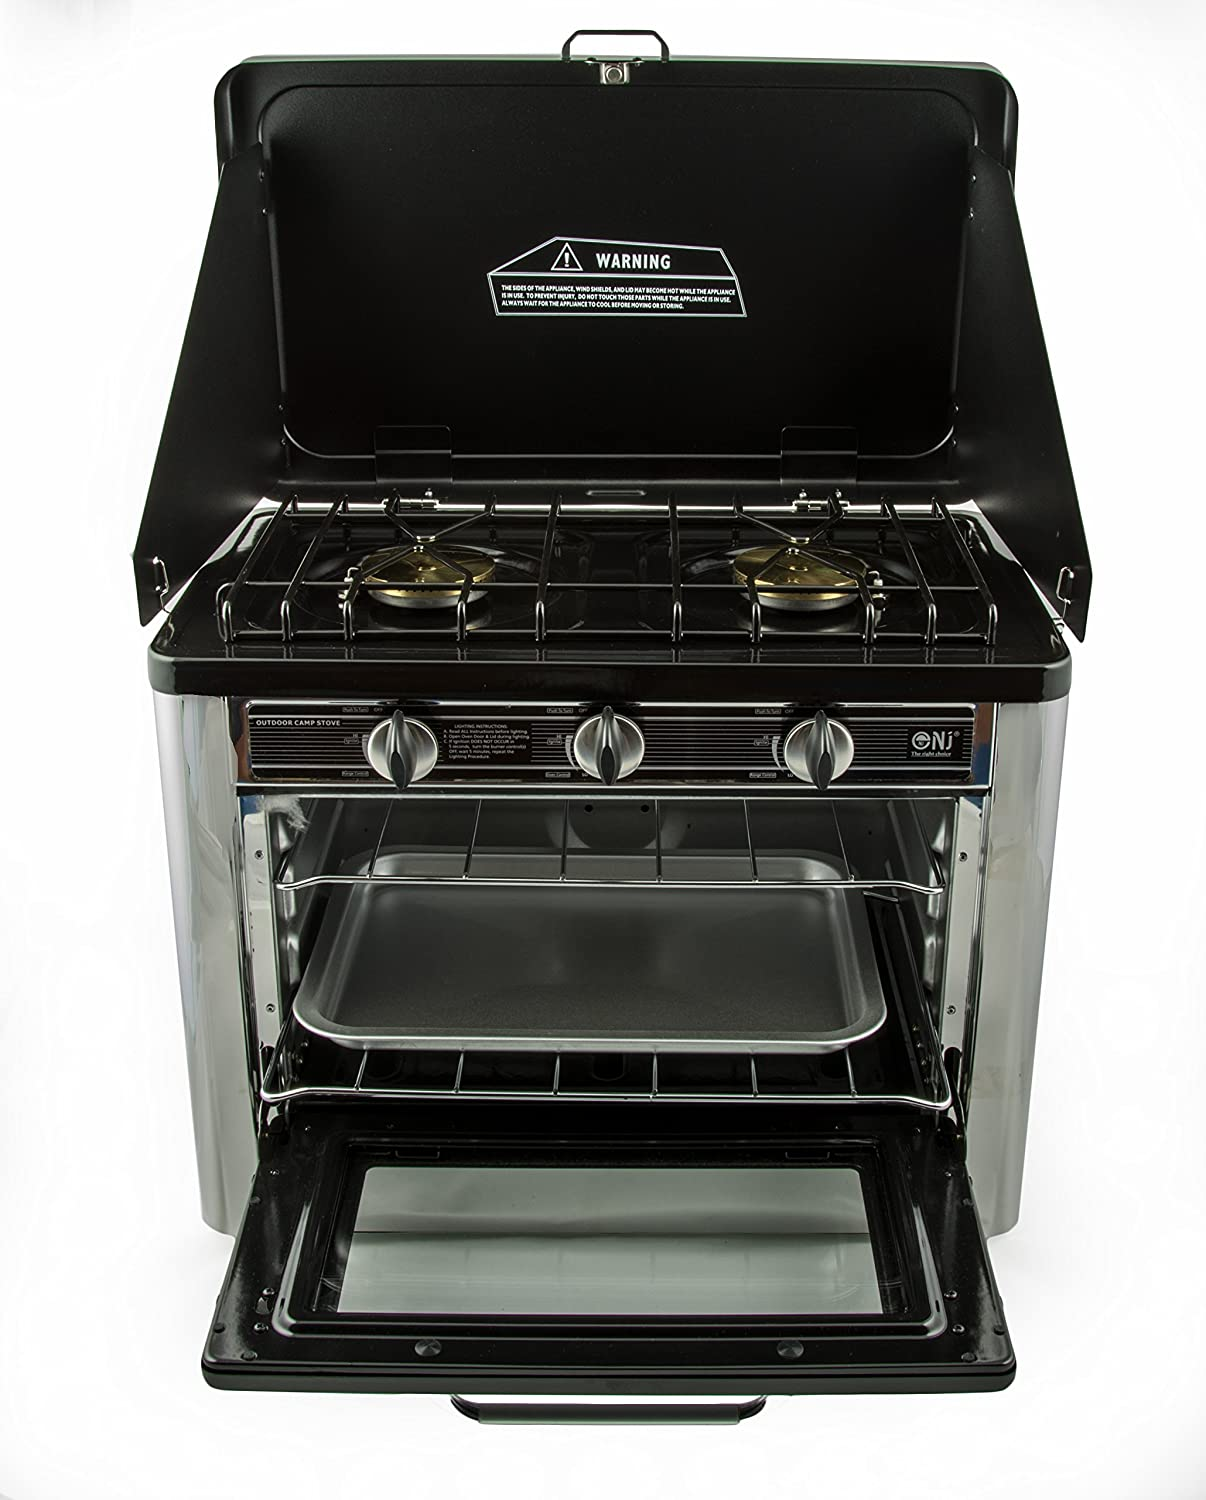 could the NJ CO-01 be the best cookers for you?